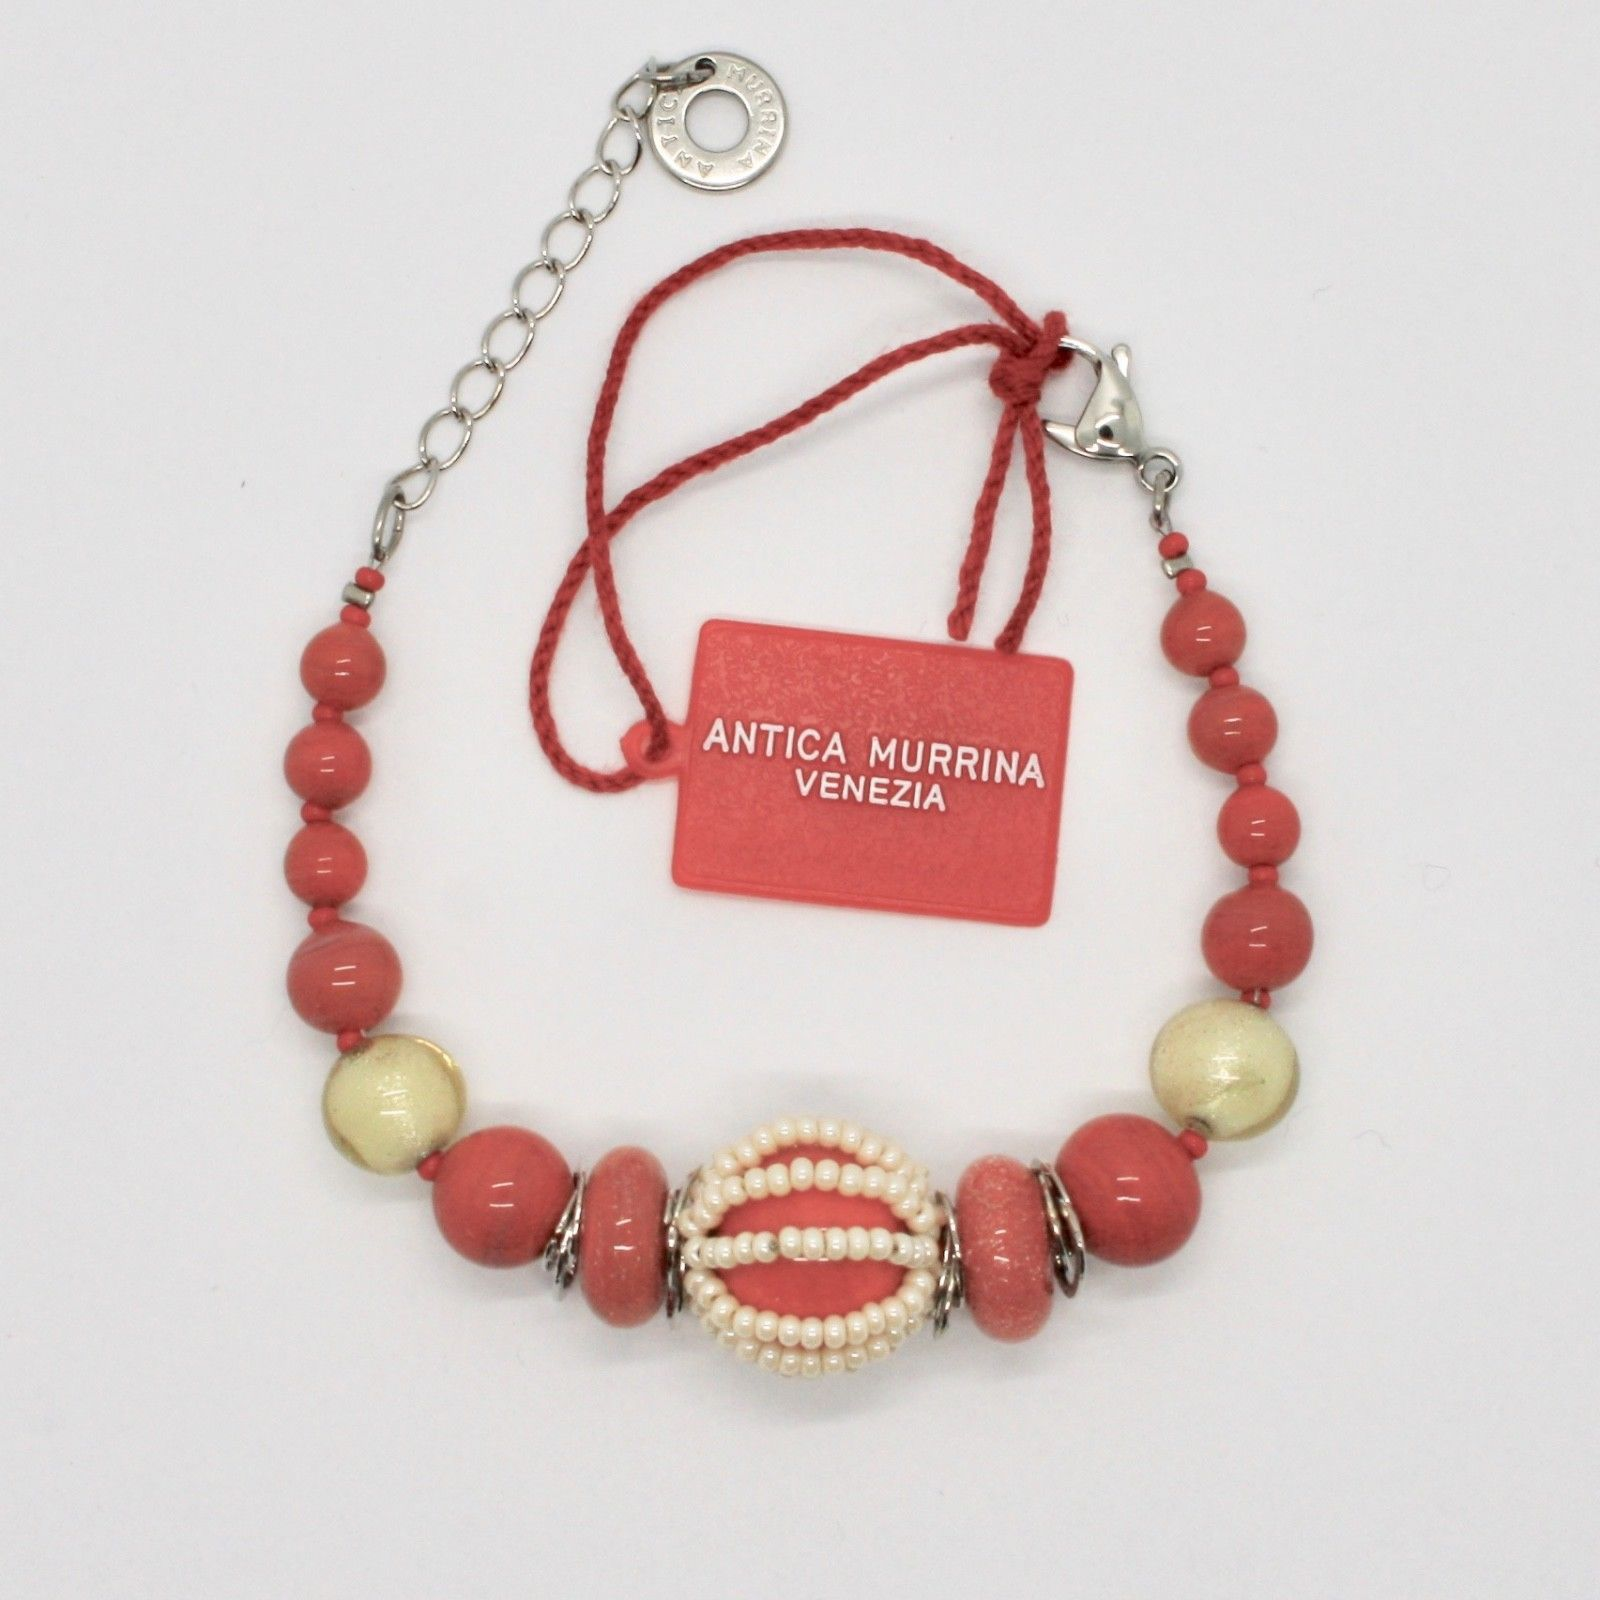 BRACELET ANTICA MURRINA VENEZIA WITH MURANO GLASS ROSO CORAL BR742A25